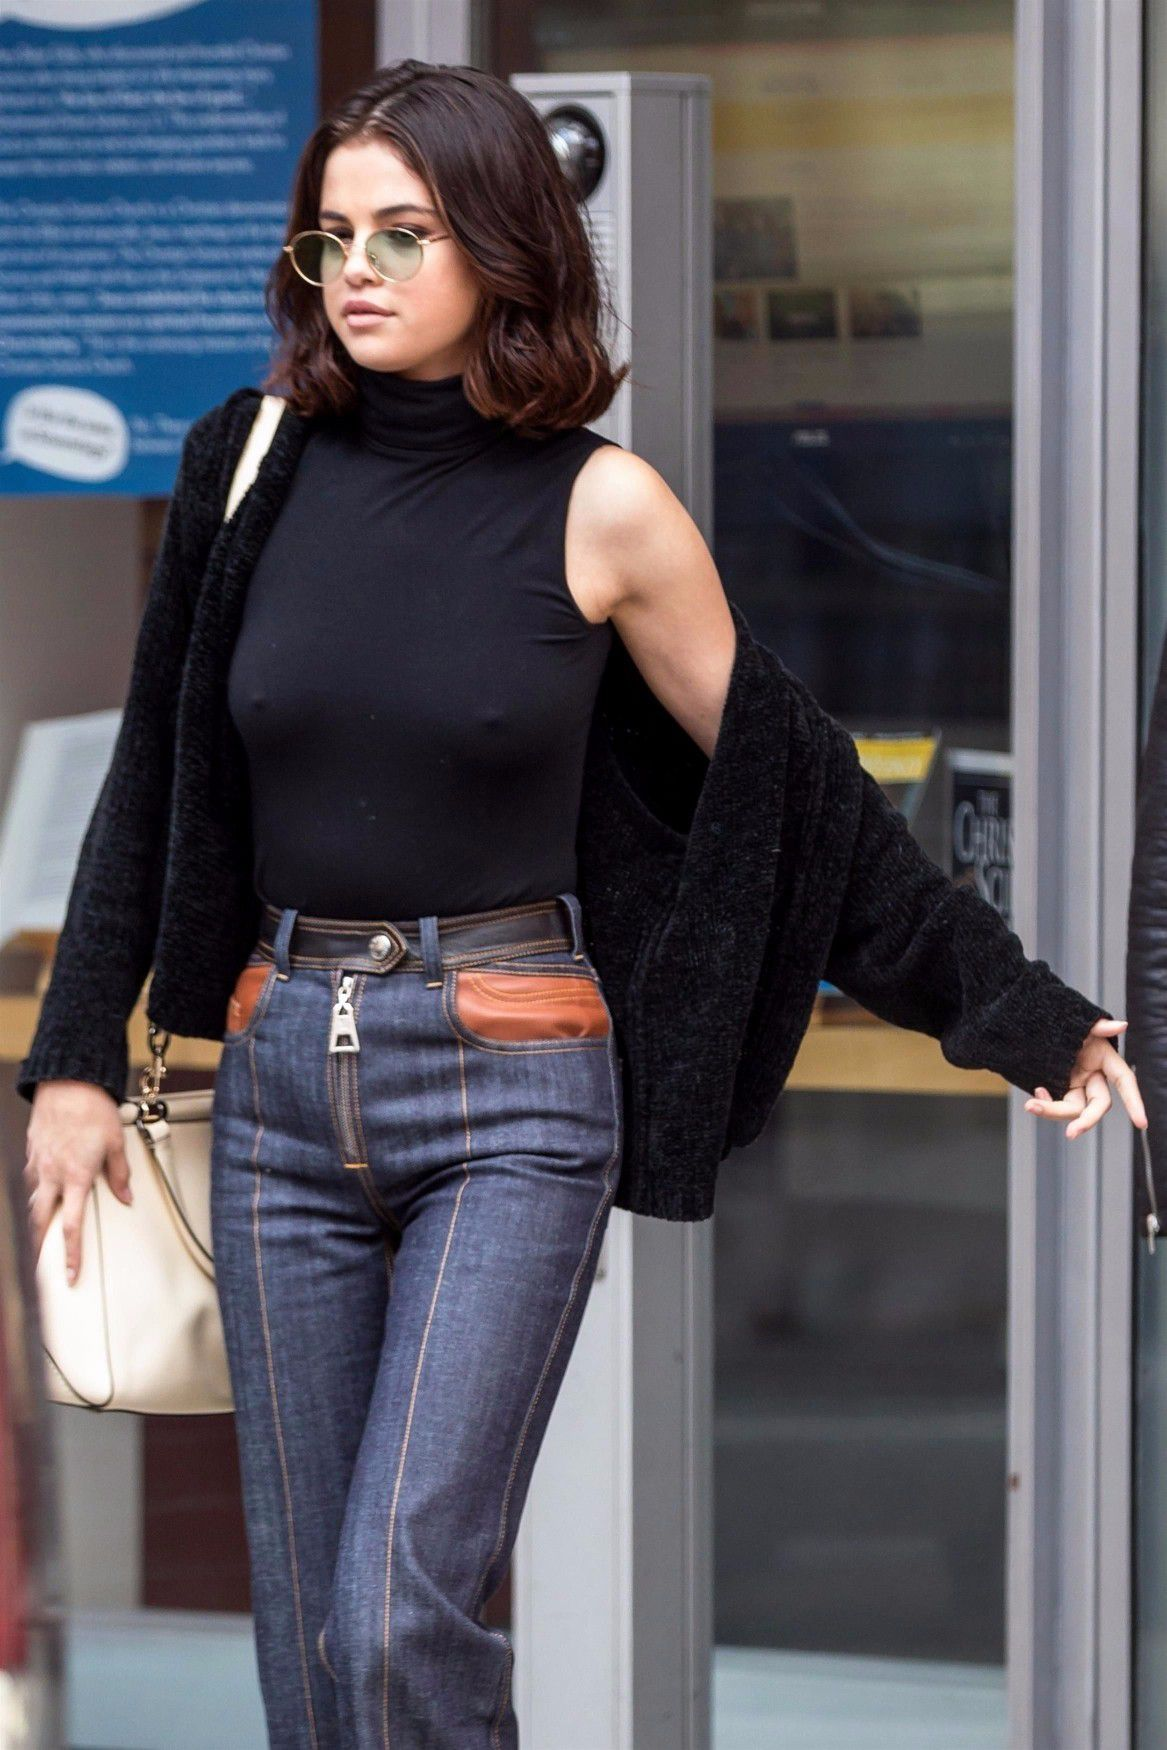 selena-gomez-braless-pokies-hard-nipples-in-new-york-1873